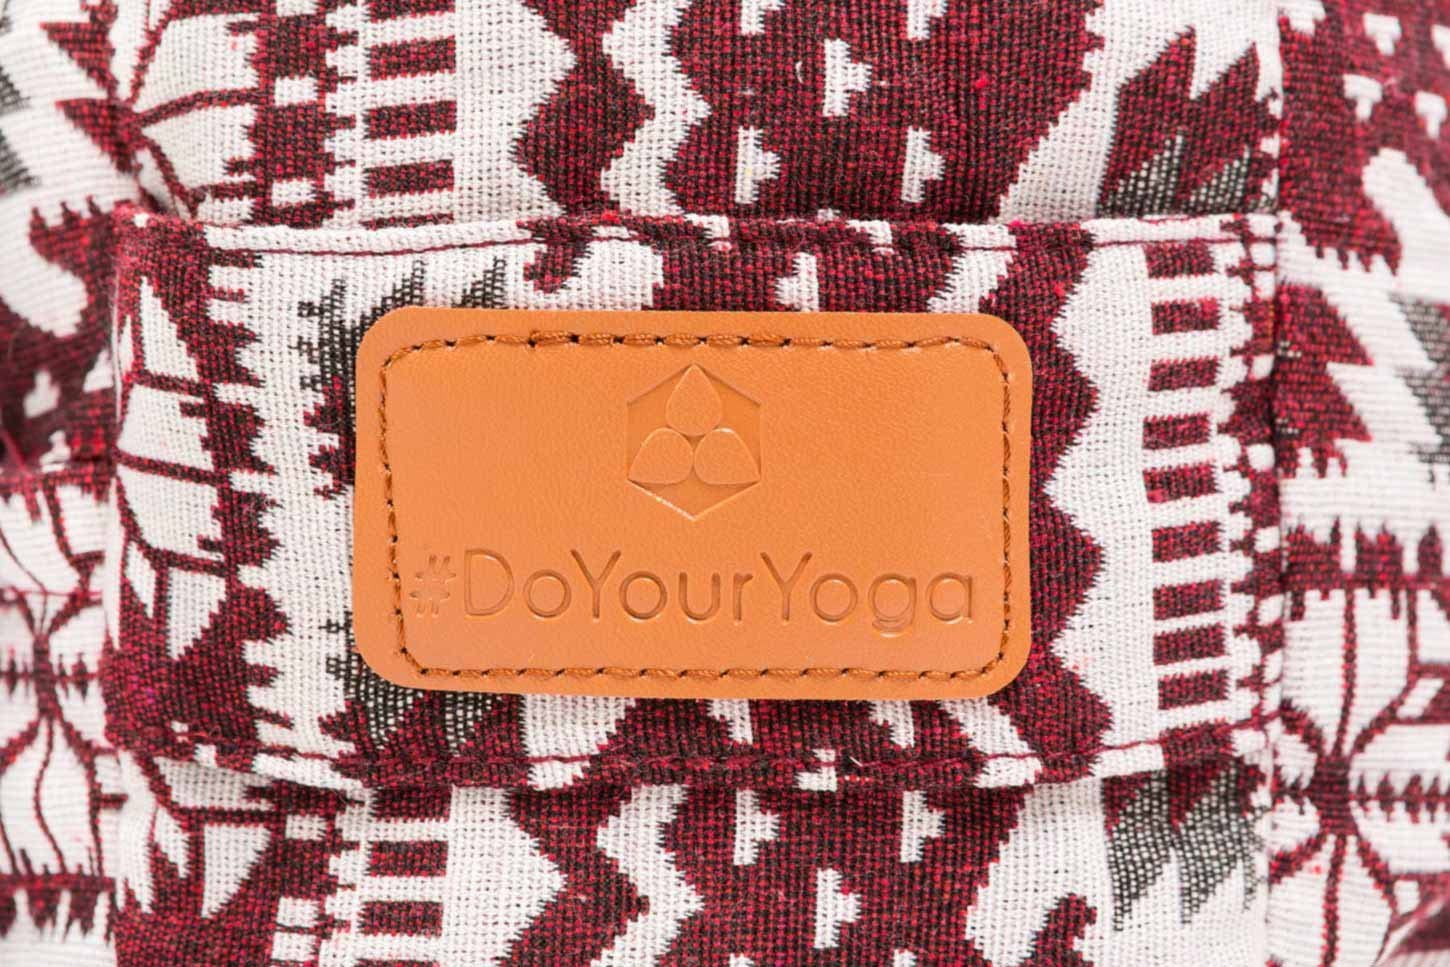 Amazon.com: #DoYourYoga - Cojín rectangular para yoga ...